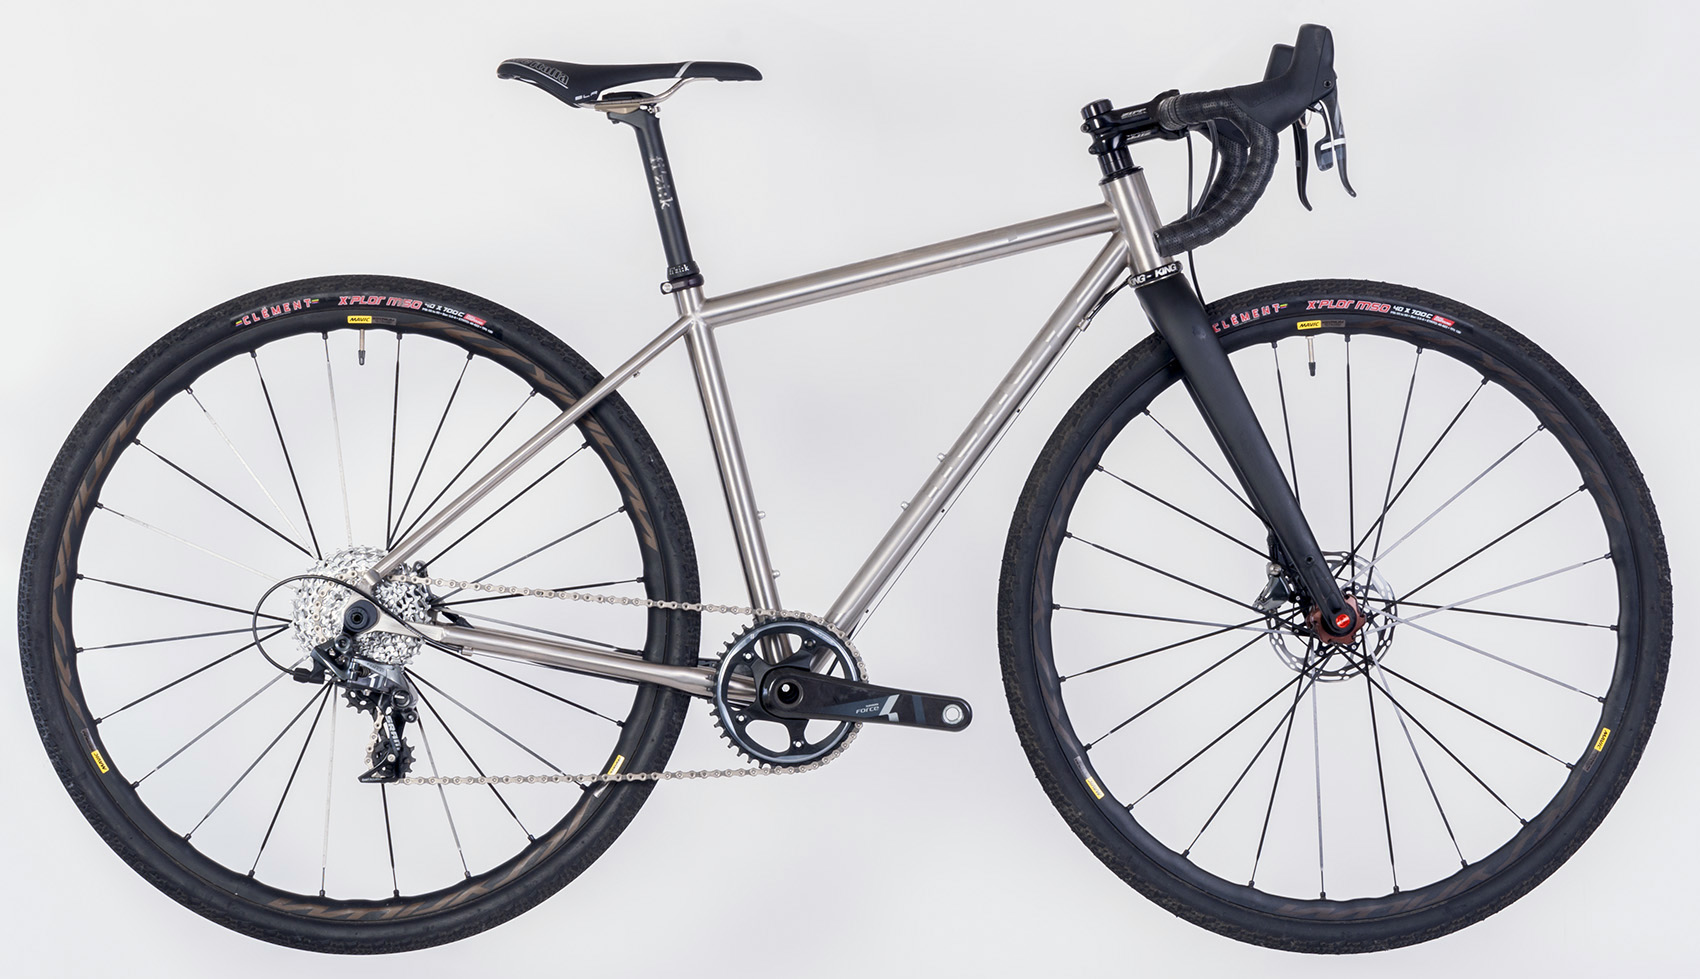 Honey Allroads is the best value gravel bike on the market. Get one to be ready for upcoming spring events!